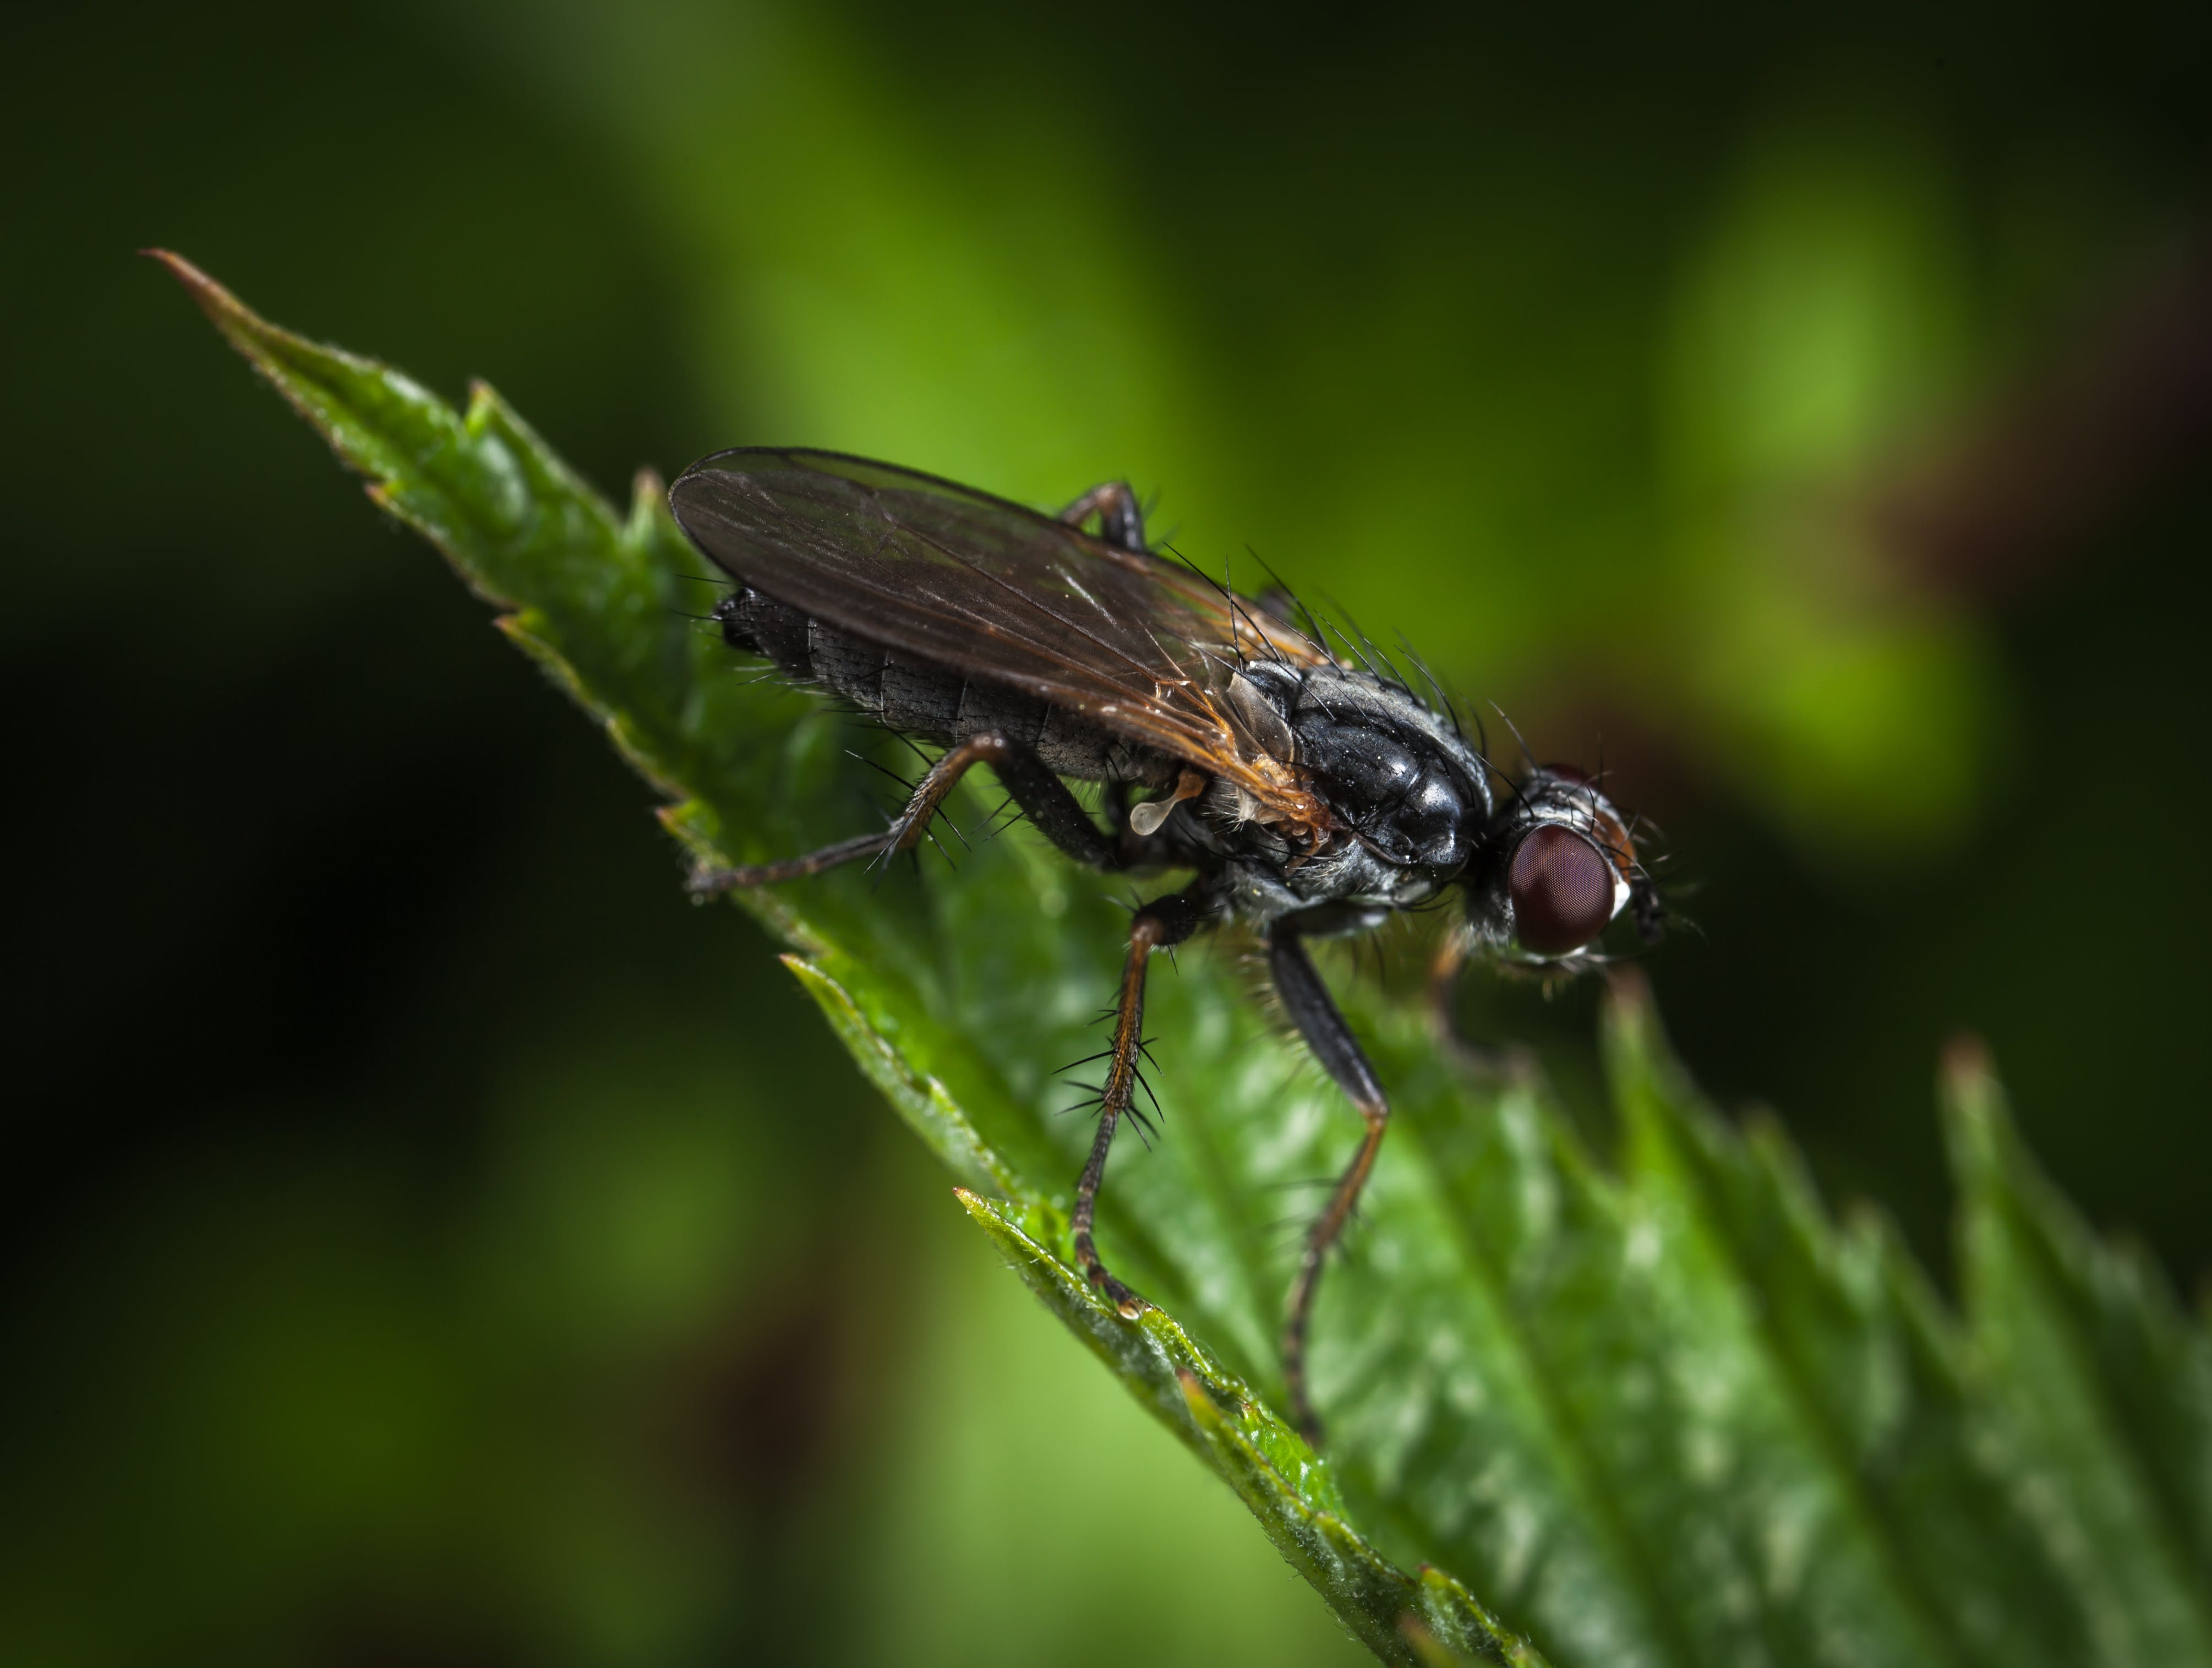 Macro Shot Photography of Black and Brown Housefly